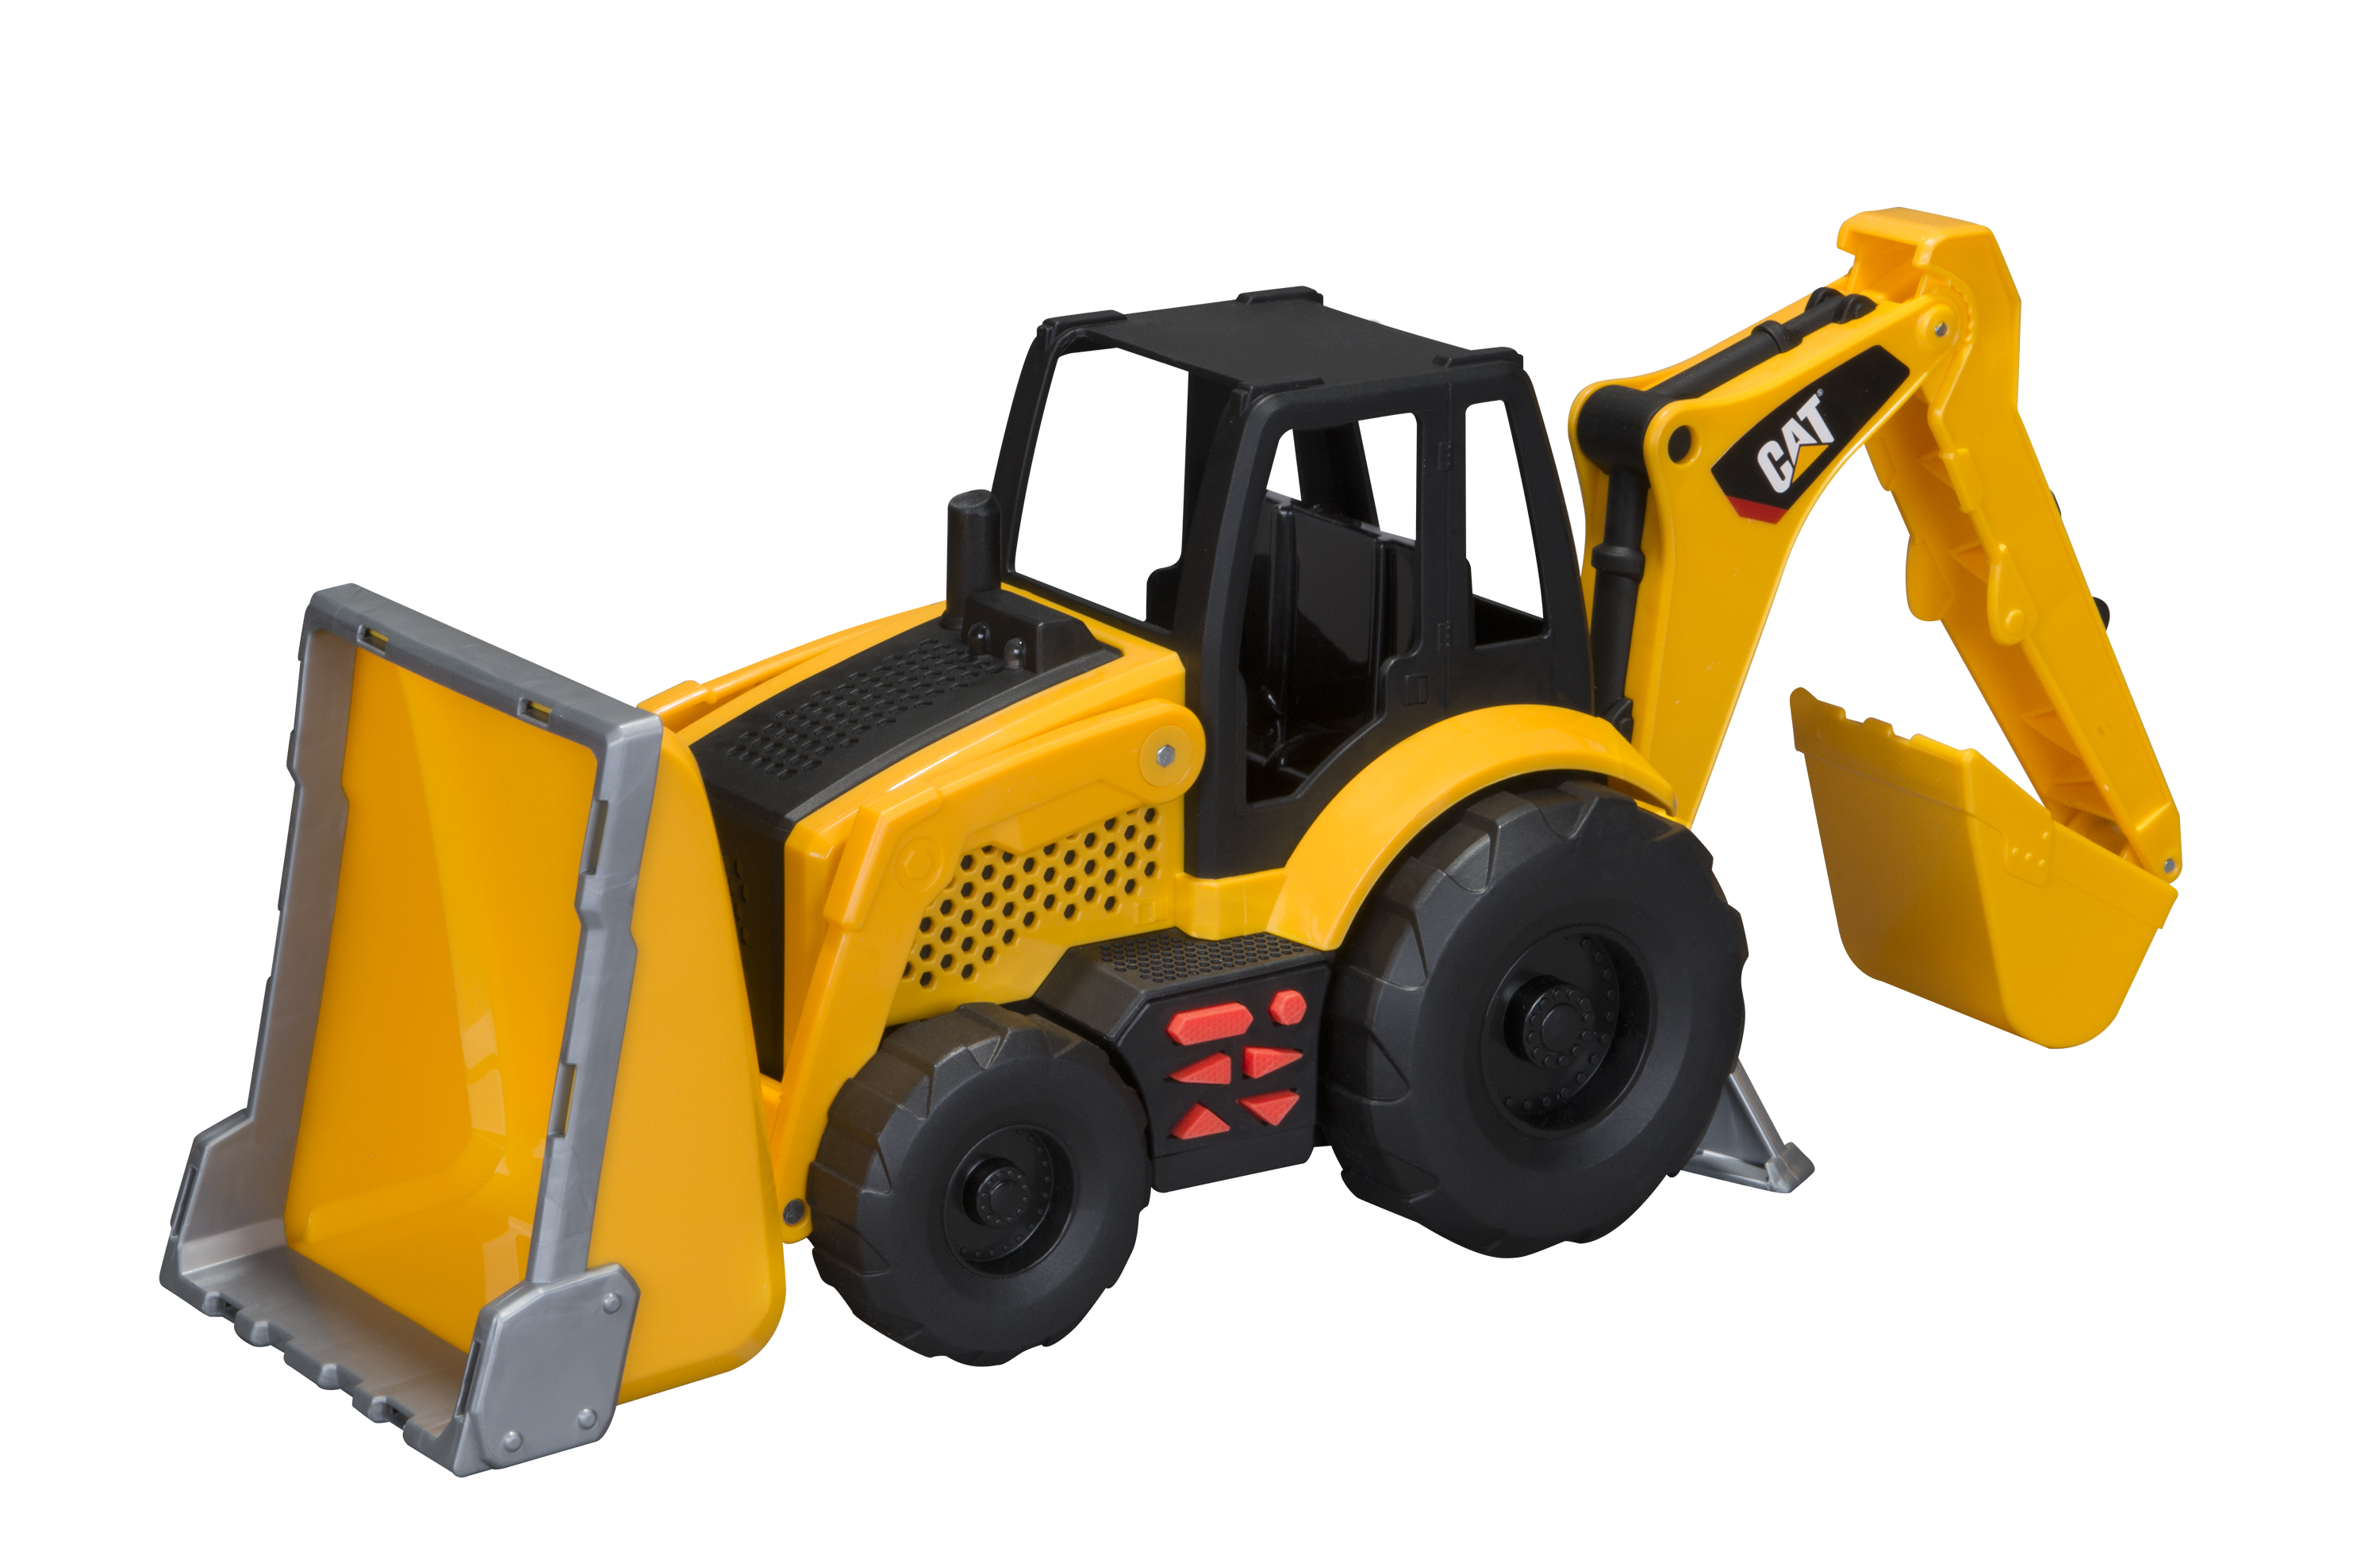 CAT Job Site Machines L&S Trucks Backhoe by Generic